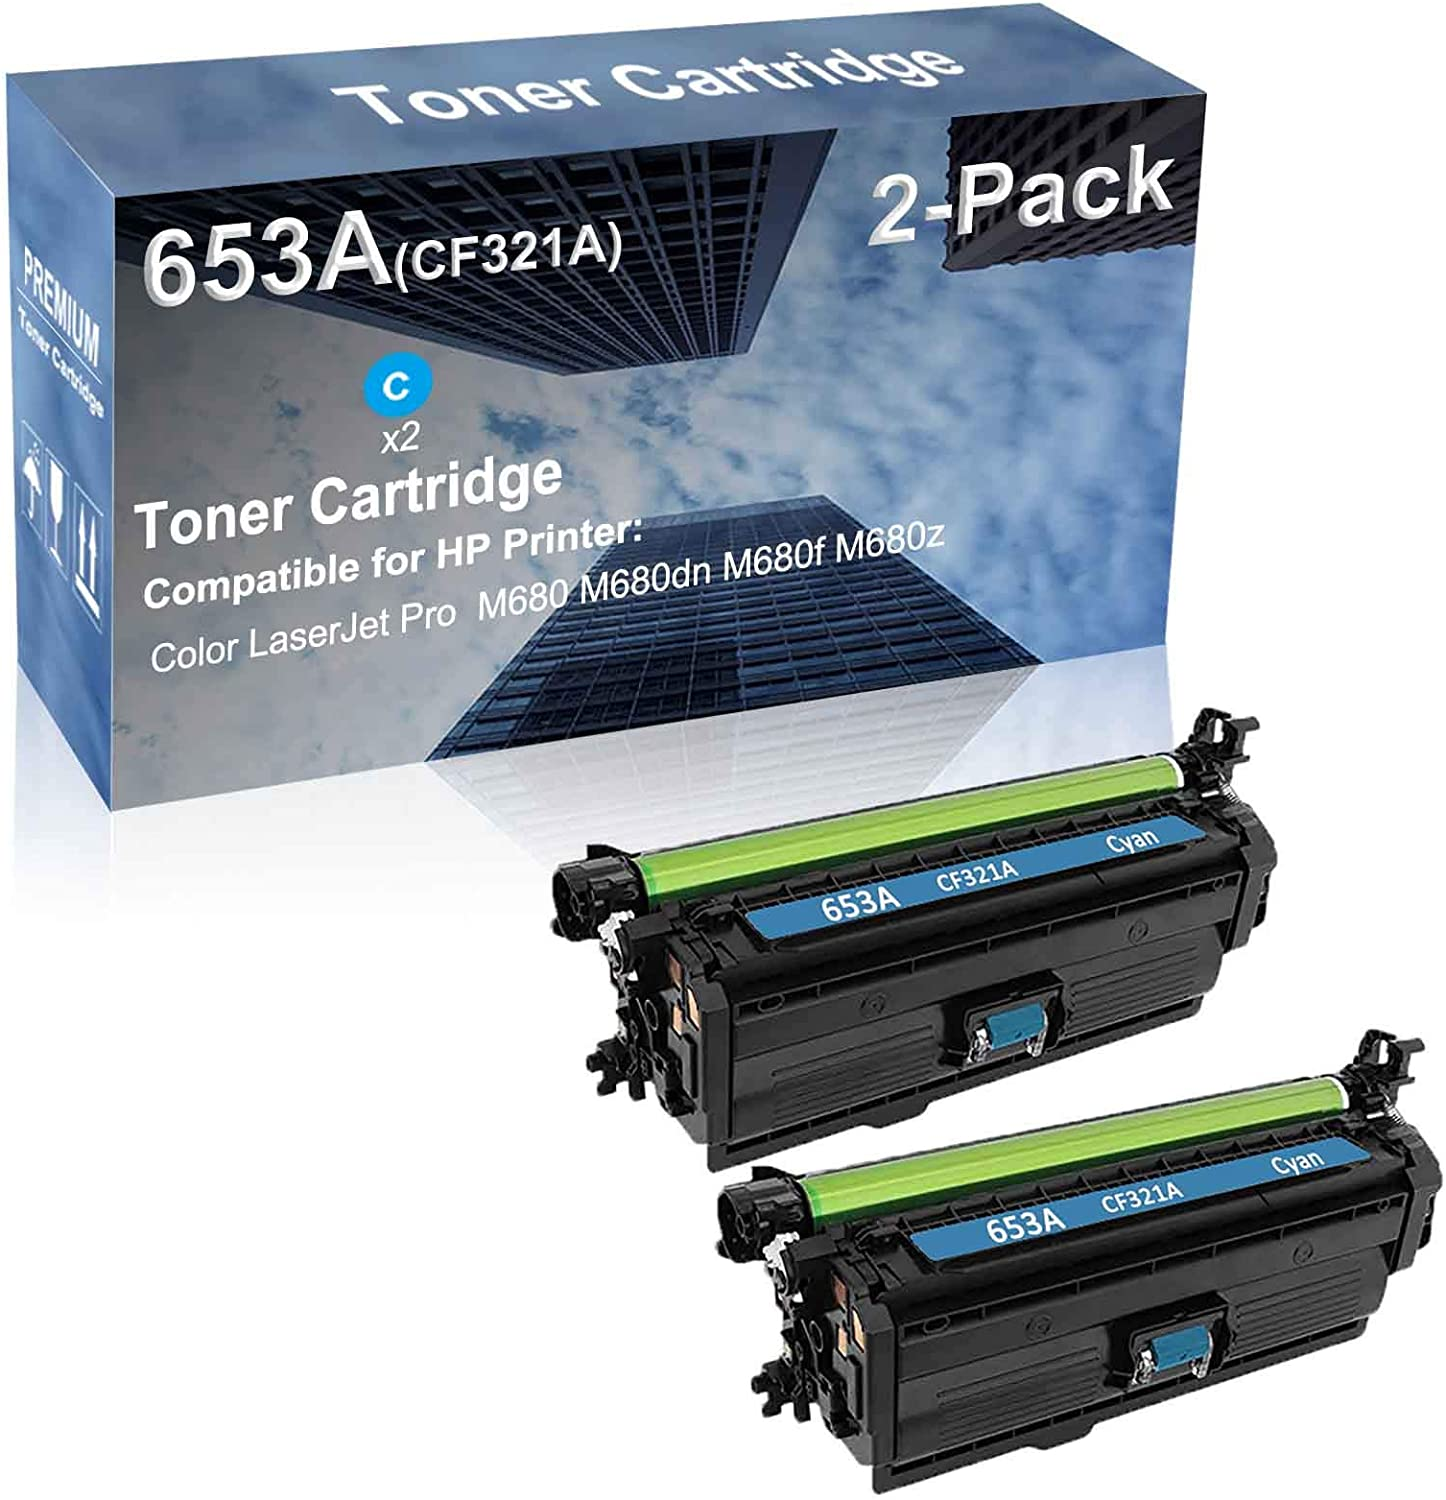 2-Pack (Cyan) Compatible High Capacity 653A (CF321A) Toner Cartridge use for HP M680 M680dn M680f M680z Printer